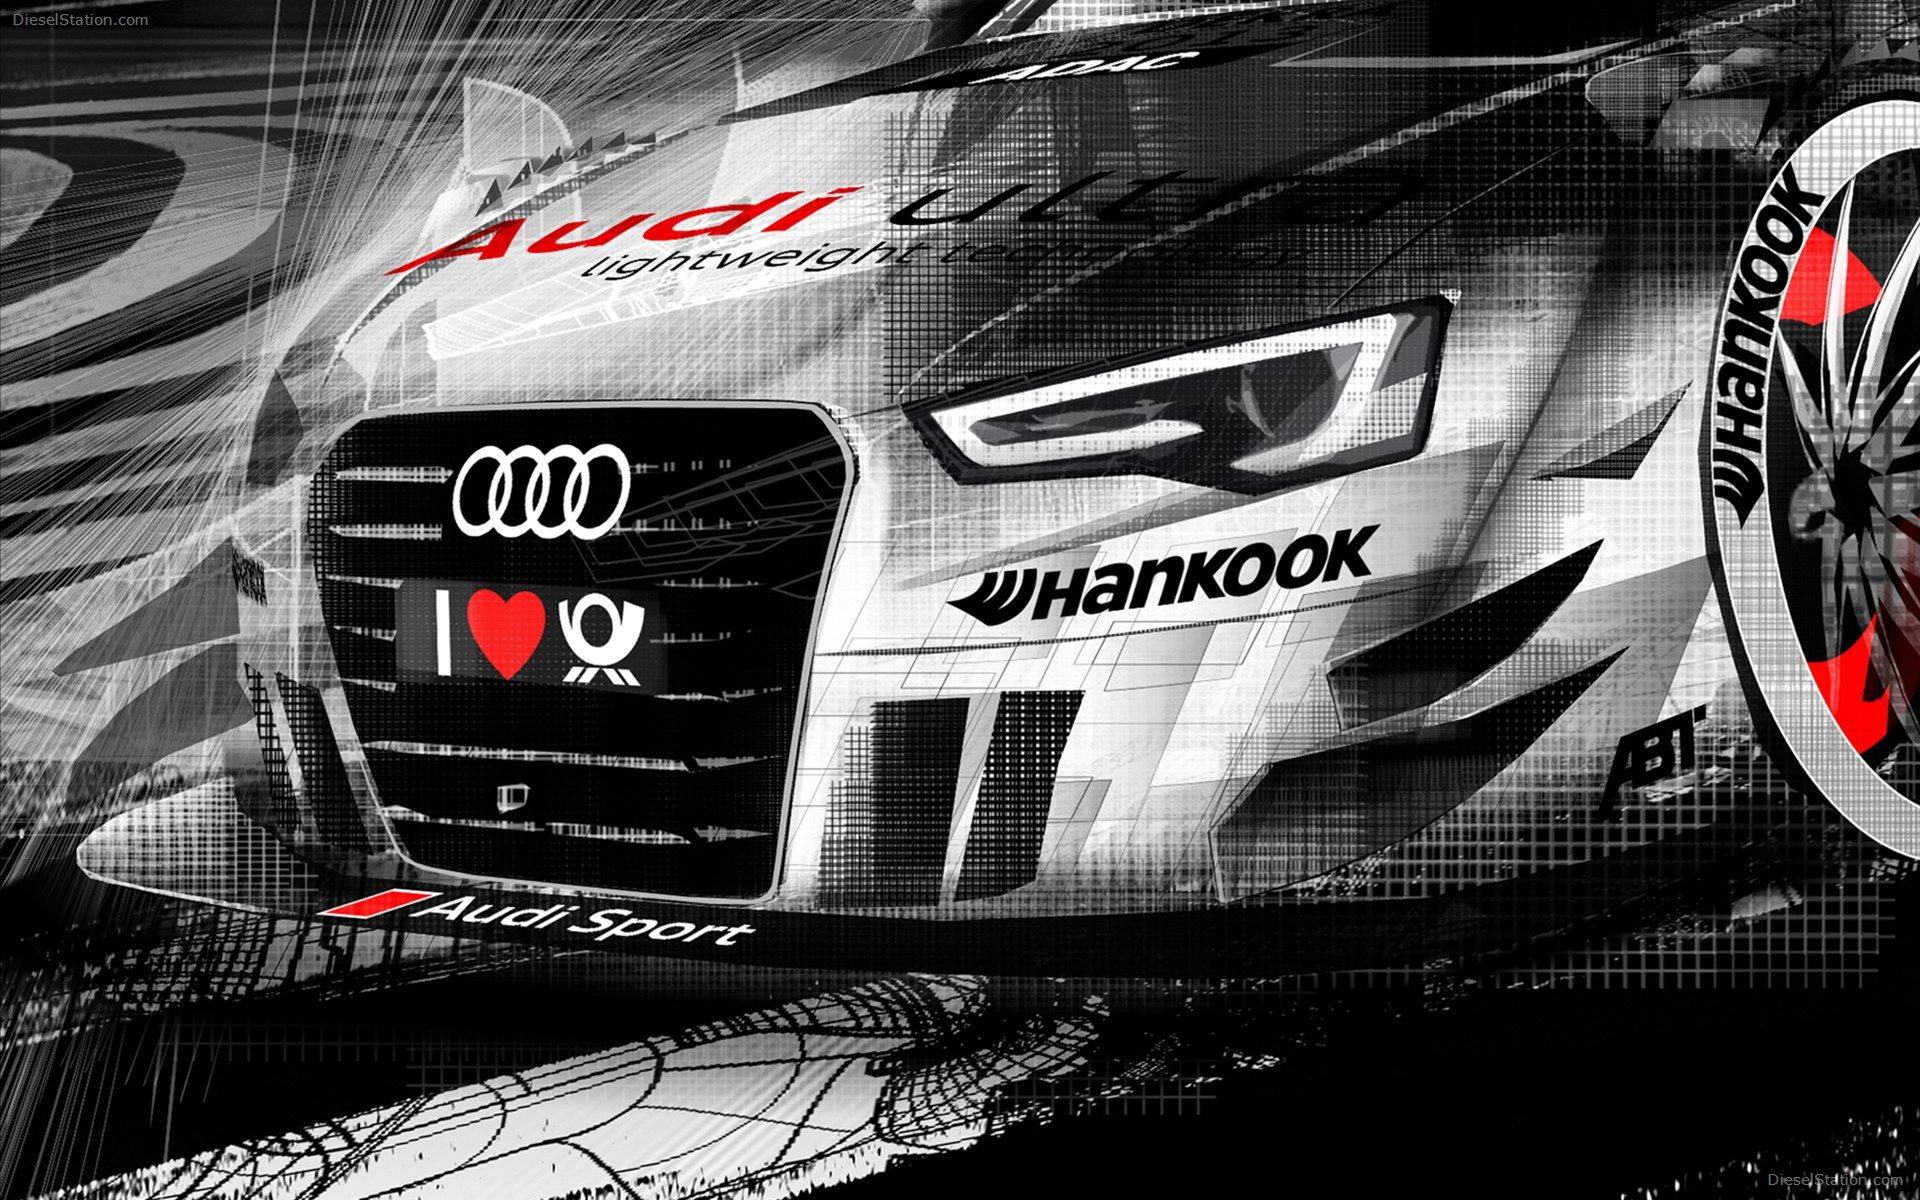 Audi RS 5 DTM 2013 Widescreen Exotic Car Image of 22 : Diesel